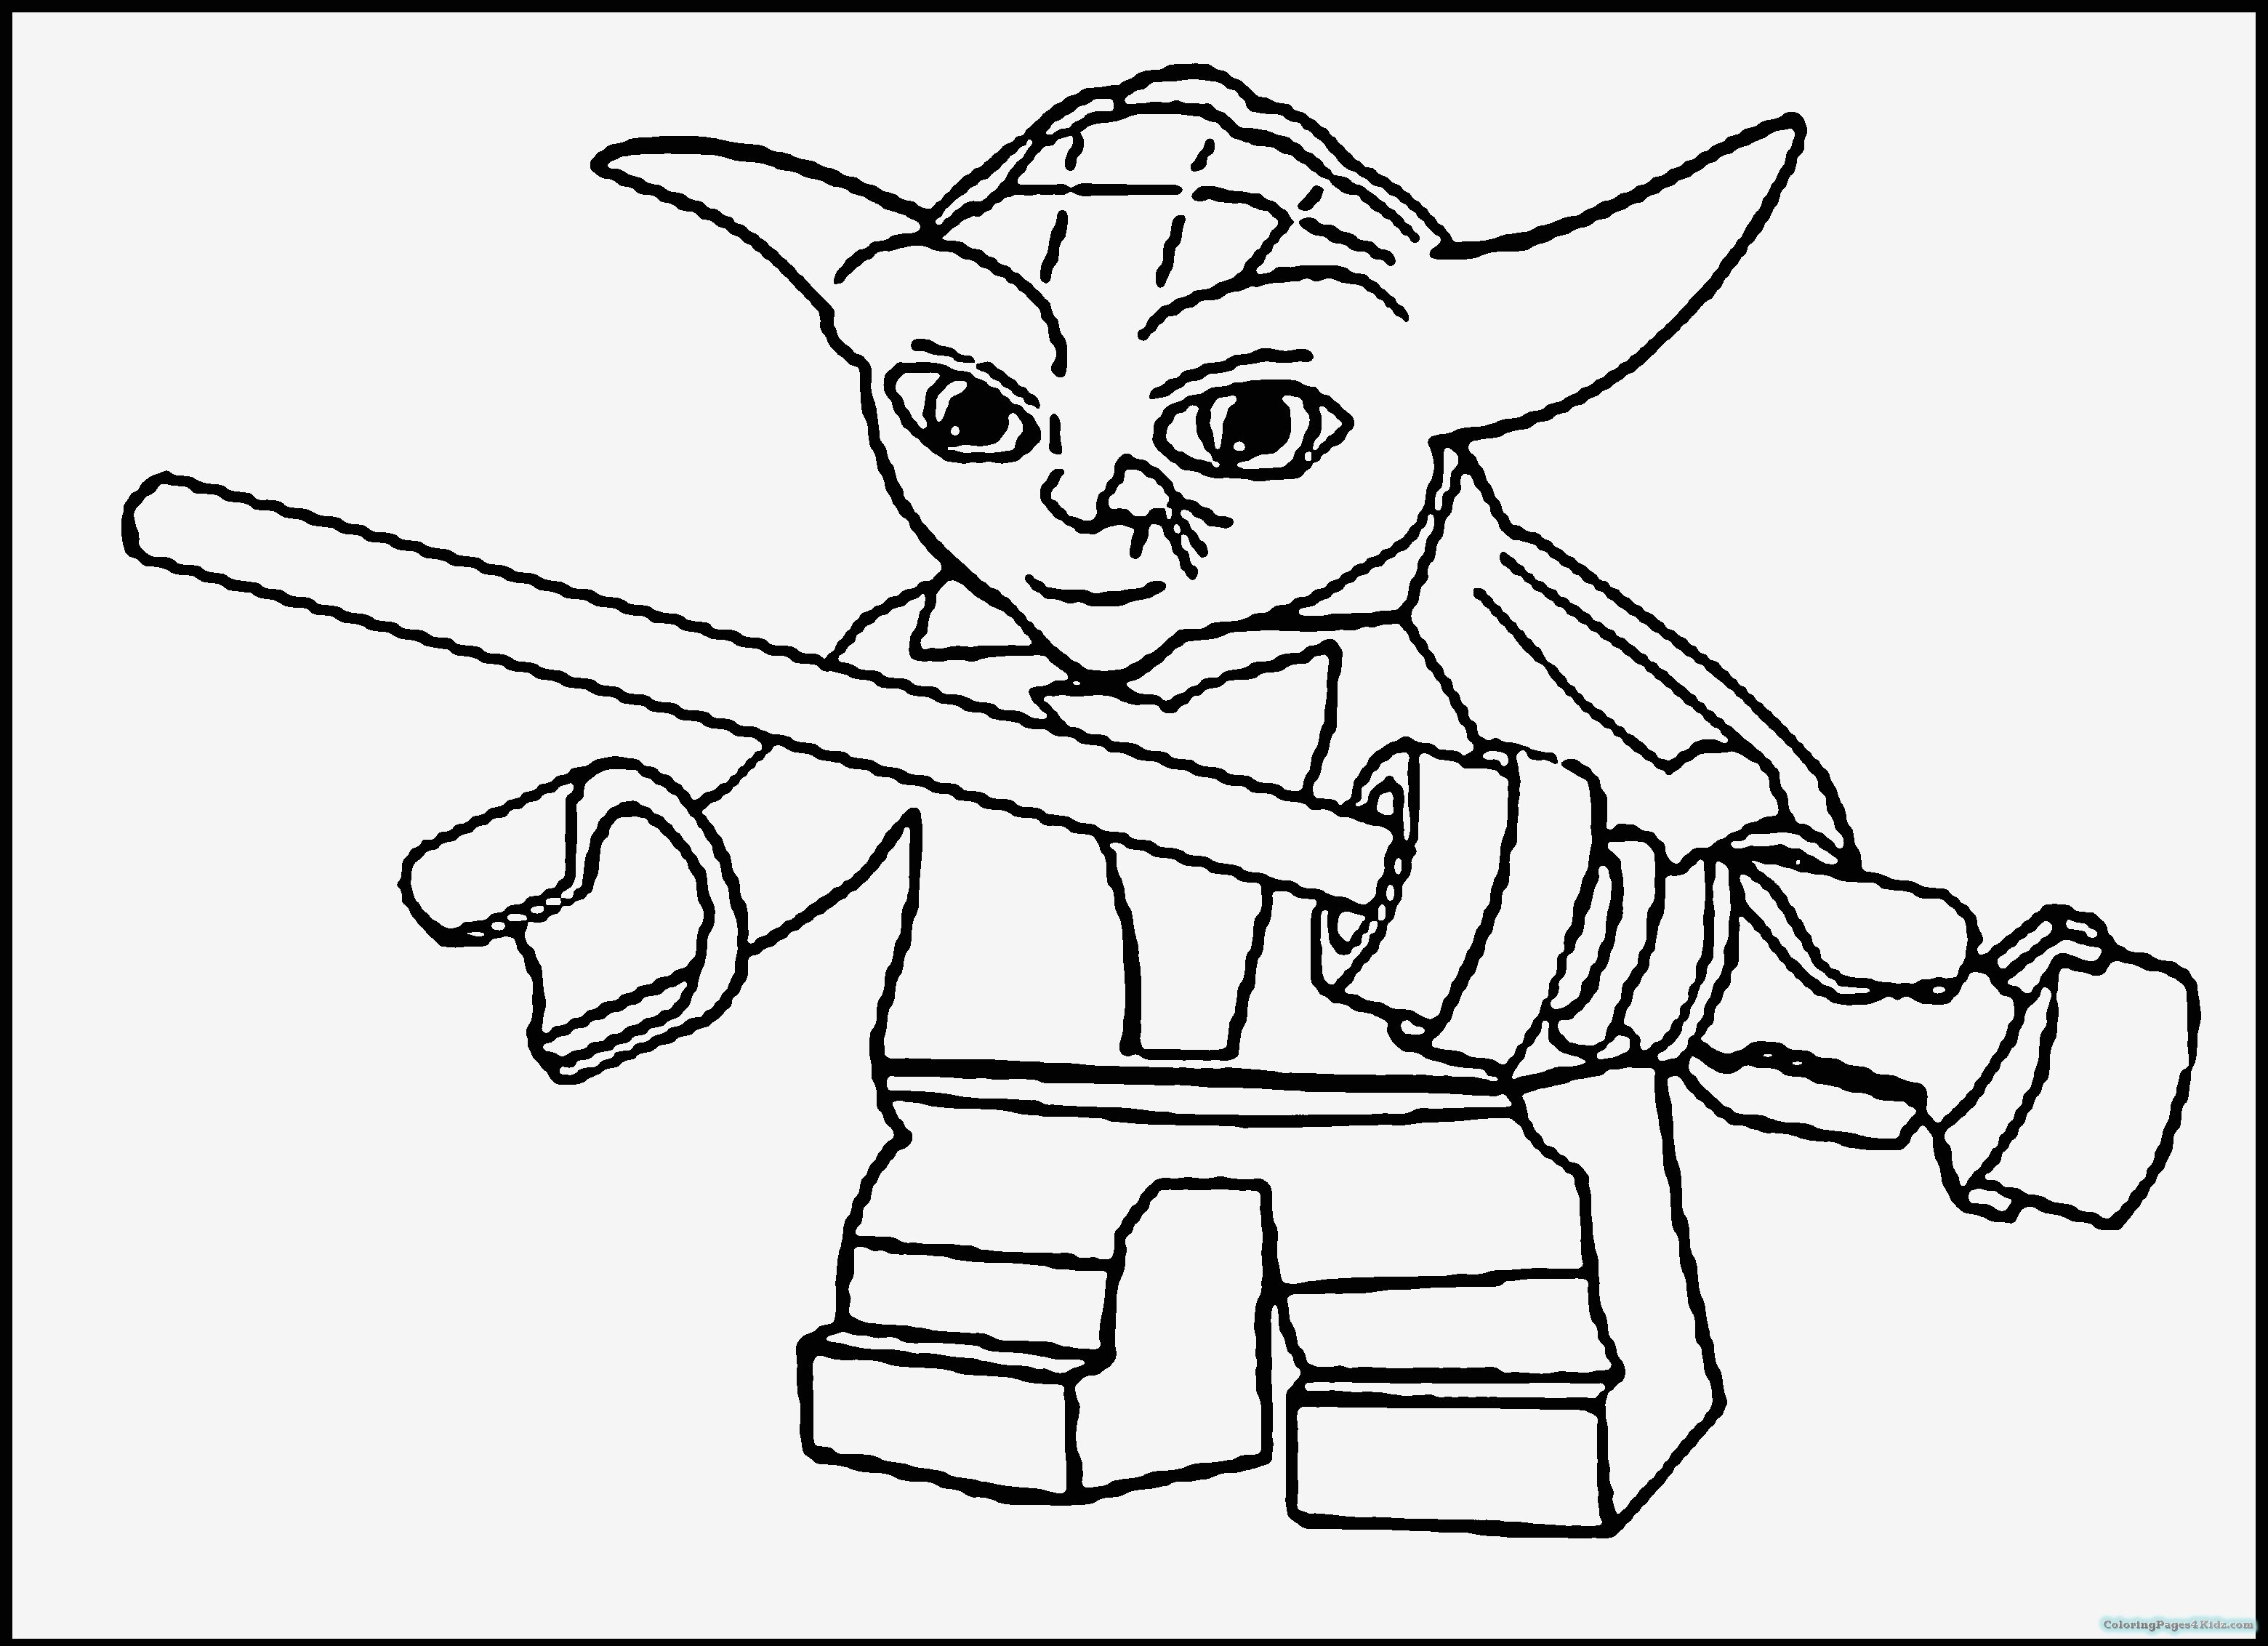 Coloring Pages : Astonishing Free Printable Stars Coloring Pages - Free Printable Star Wars Coloring Pages